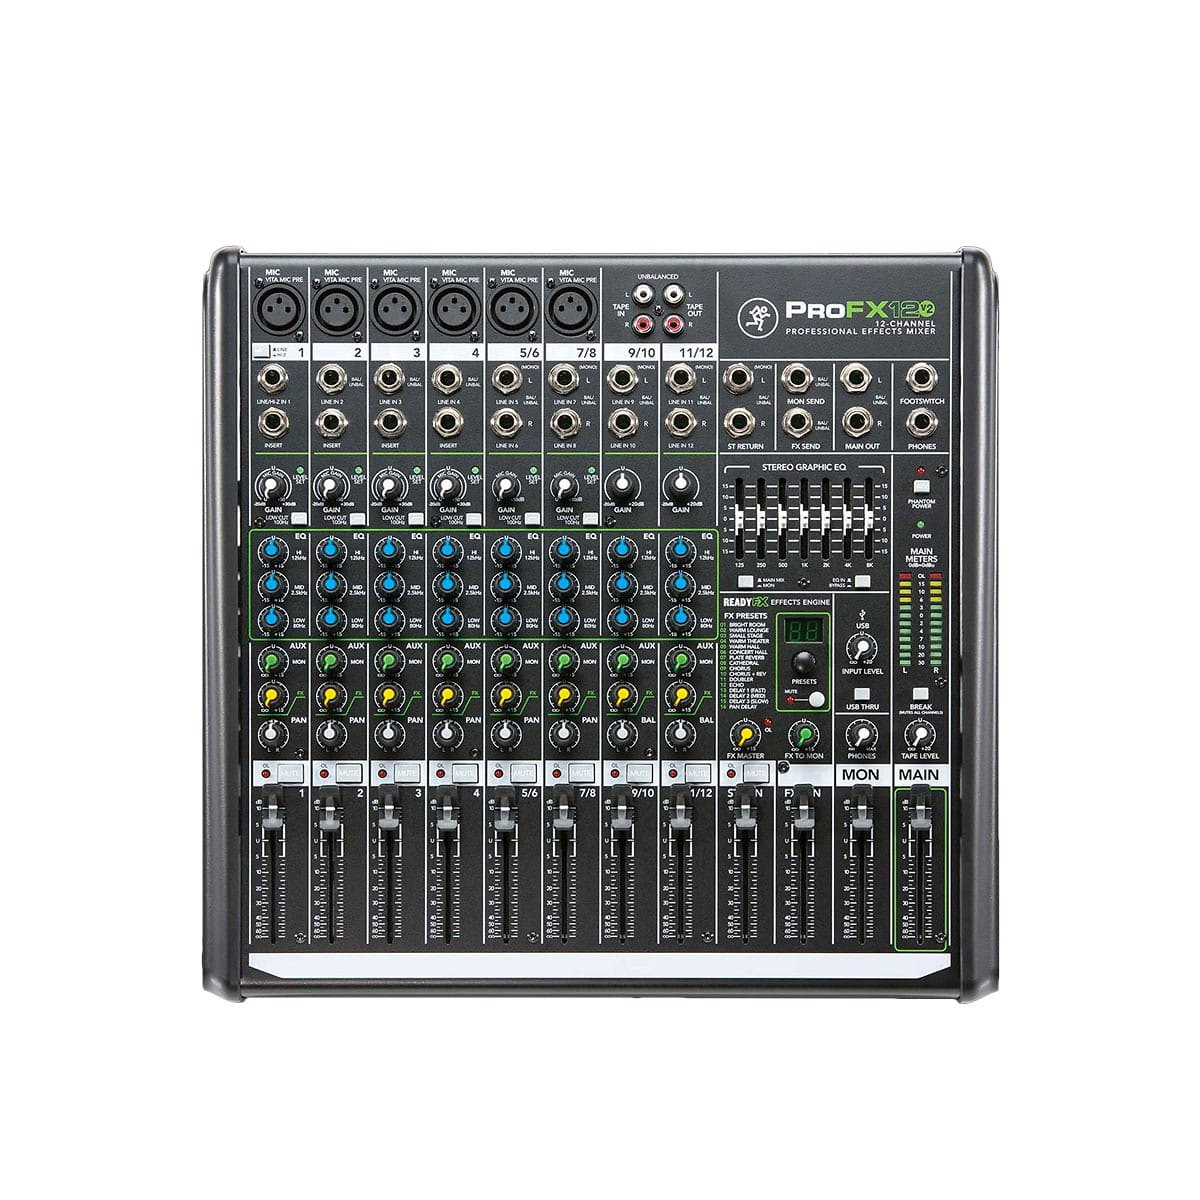 mackie profx12v2 compact effects mixer mackie direct reverb. Black Bedroom Furniture Sets. Home Design Ideas